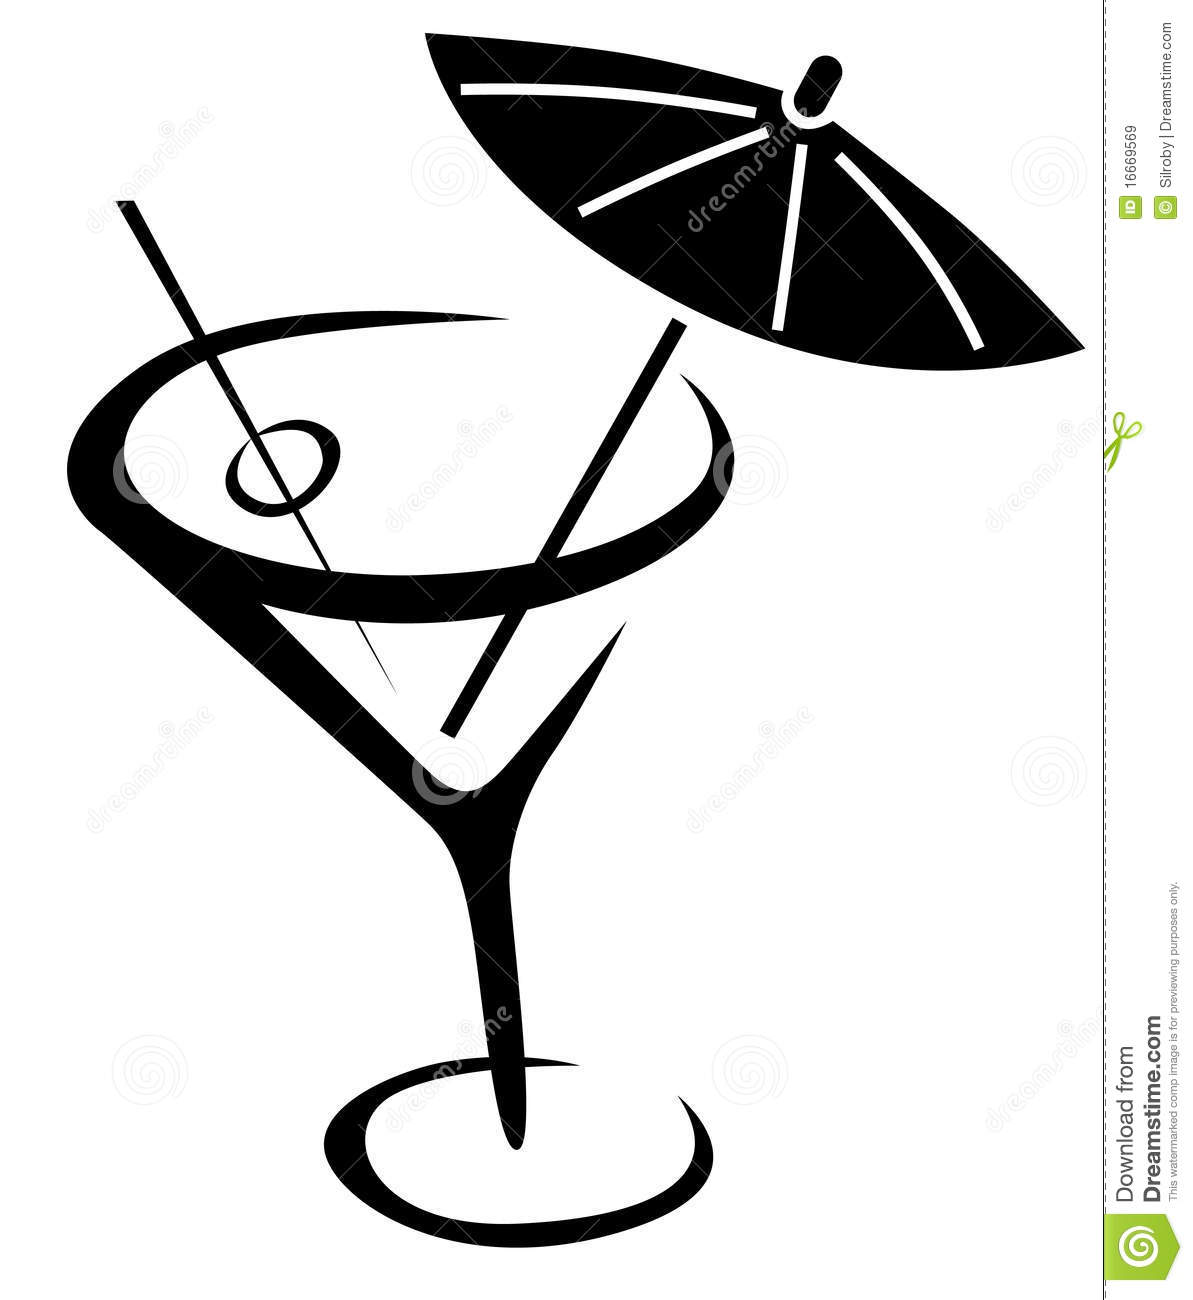 Black and white cocktails clipart.